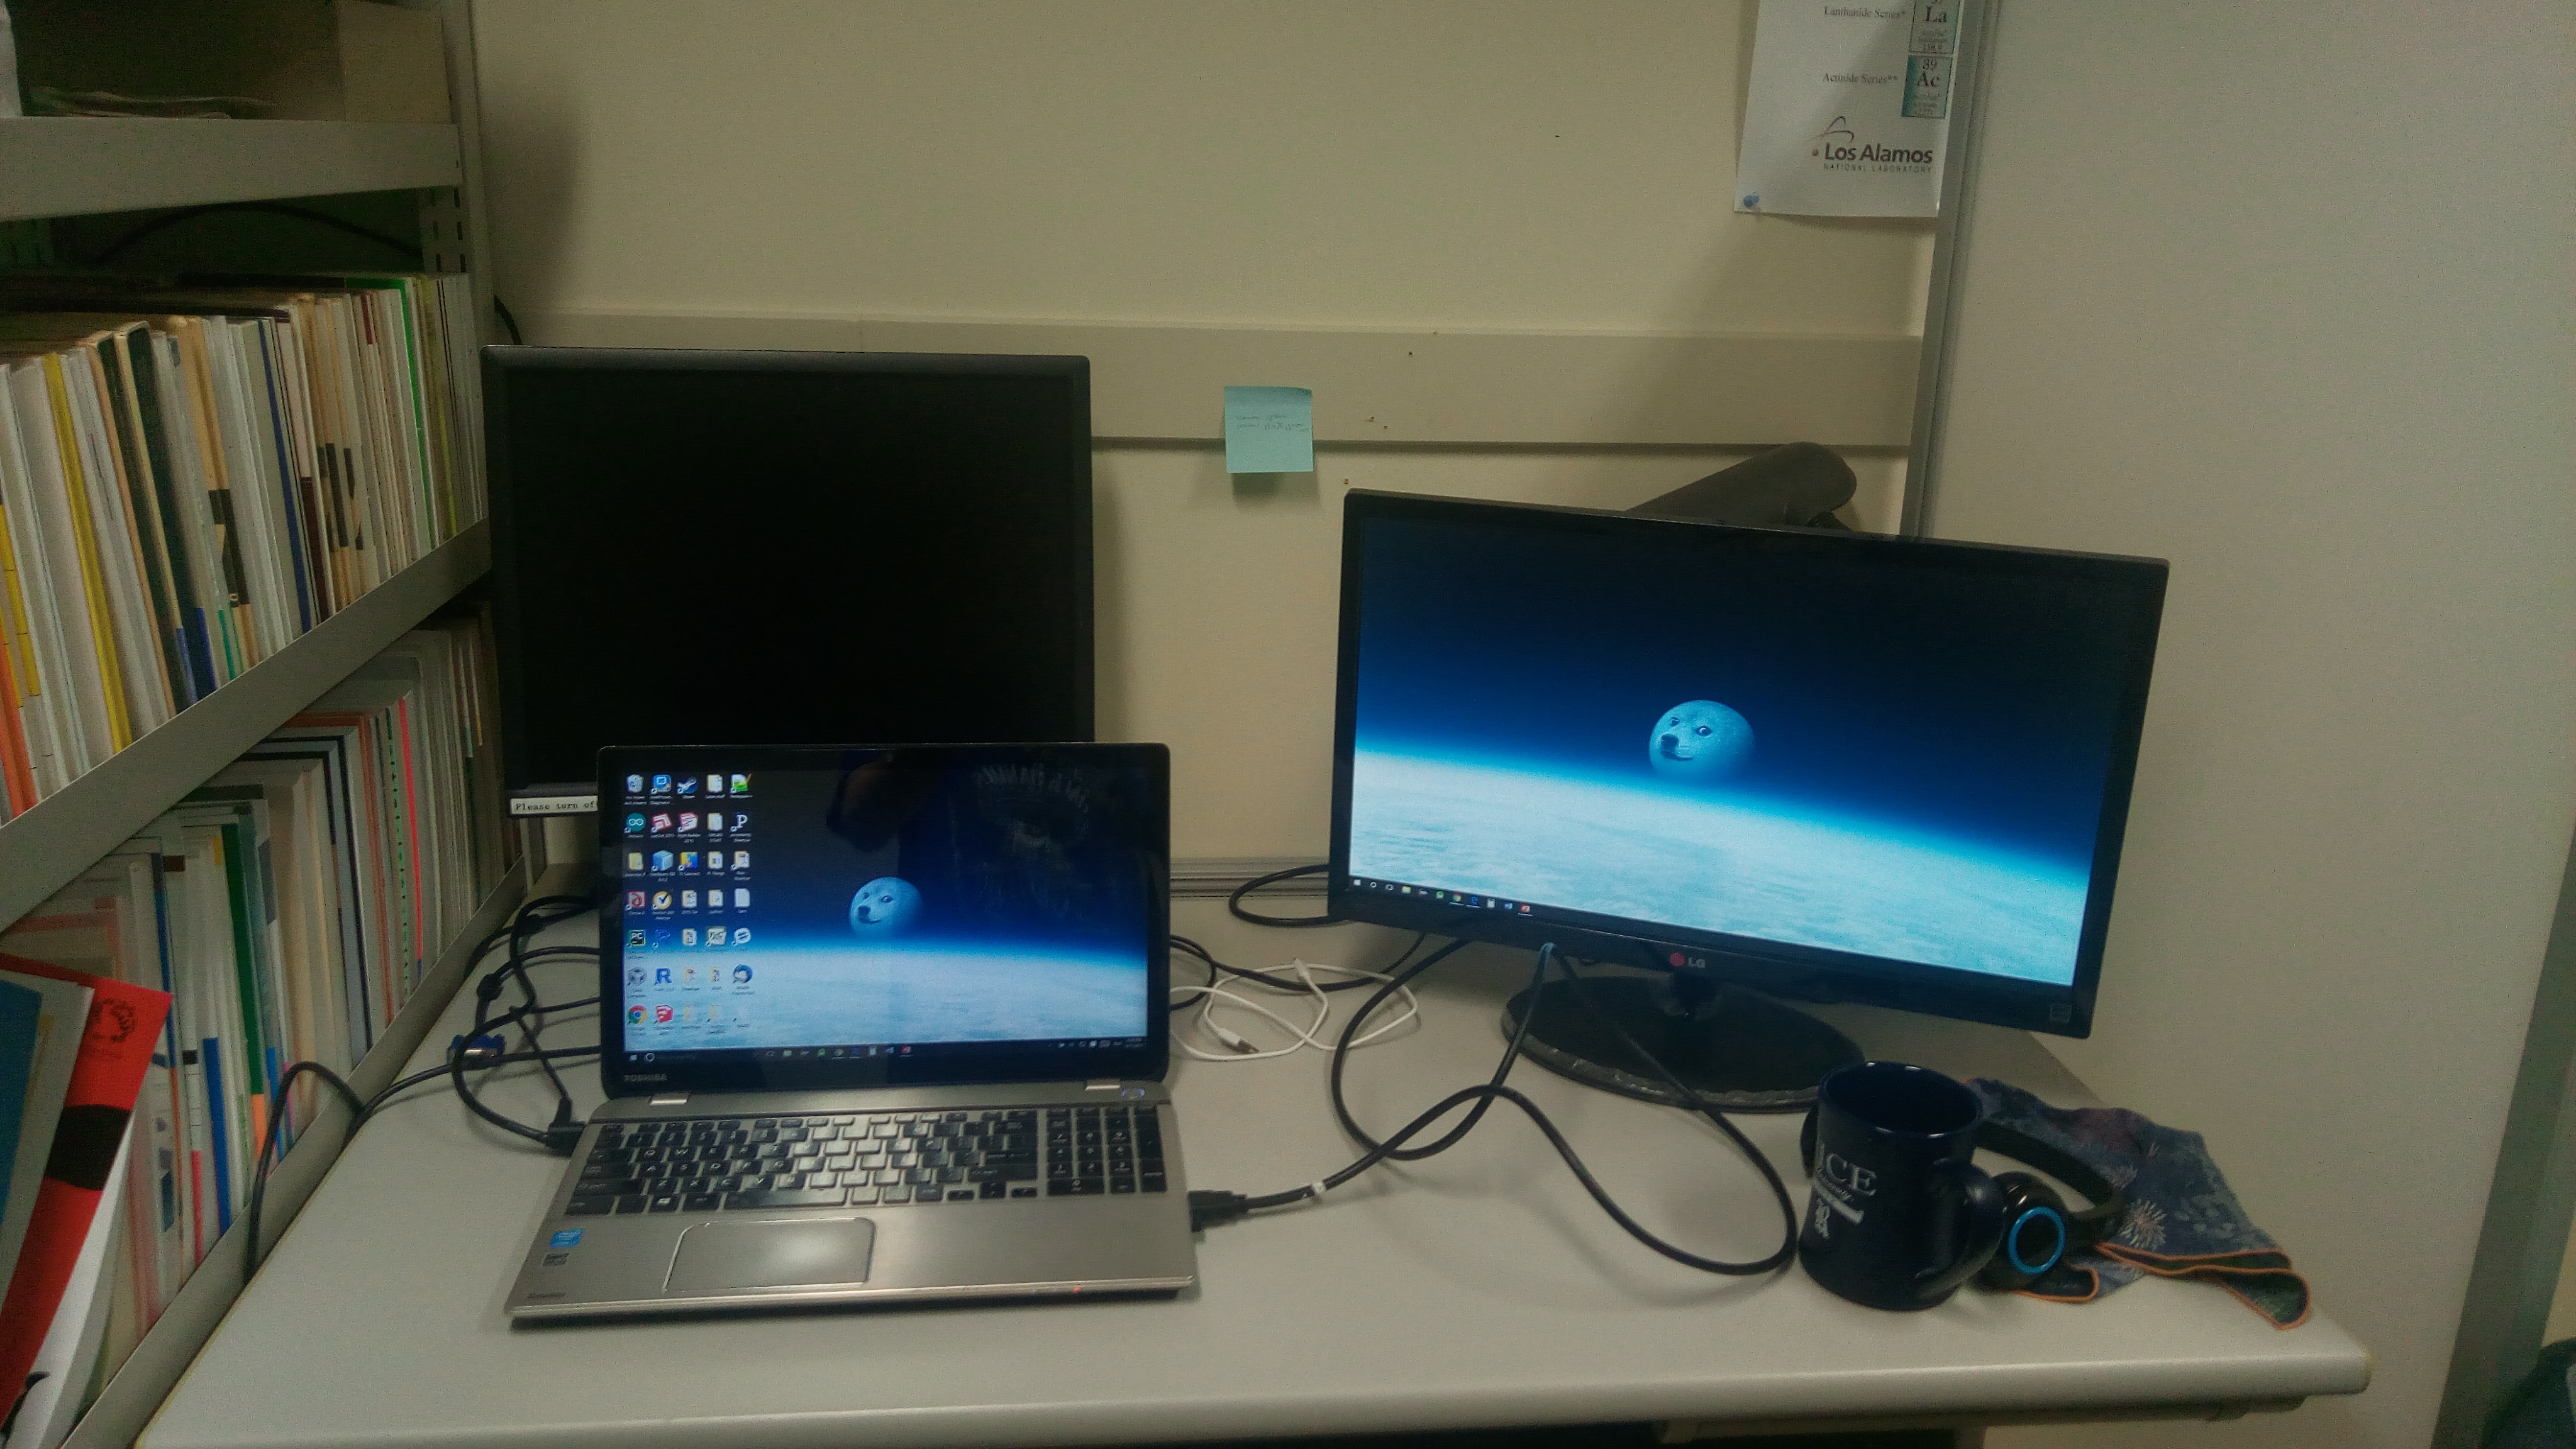 2017 jakob grzesik nakatani ries research international lab setup caption as a theorist for this summer all ill be using is my computer a pen some paper and every now and then my brain jeuxipadfo Image collections